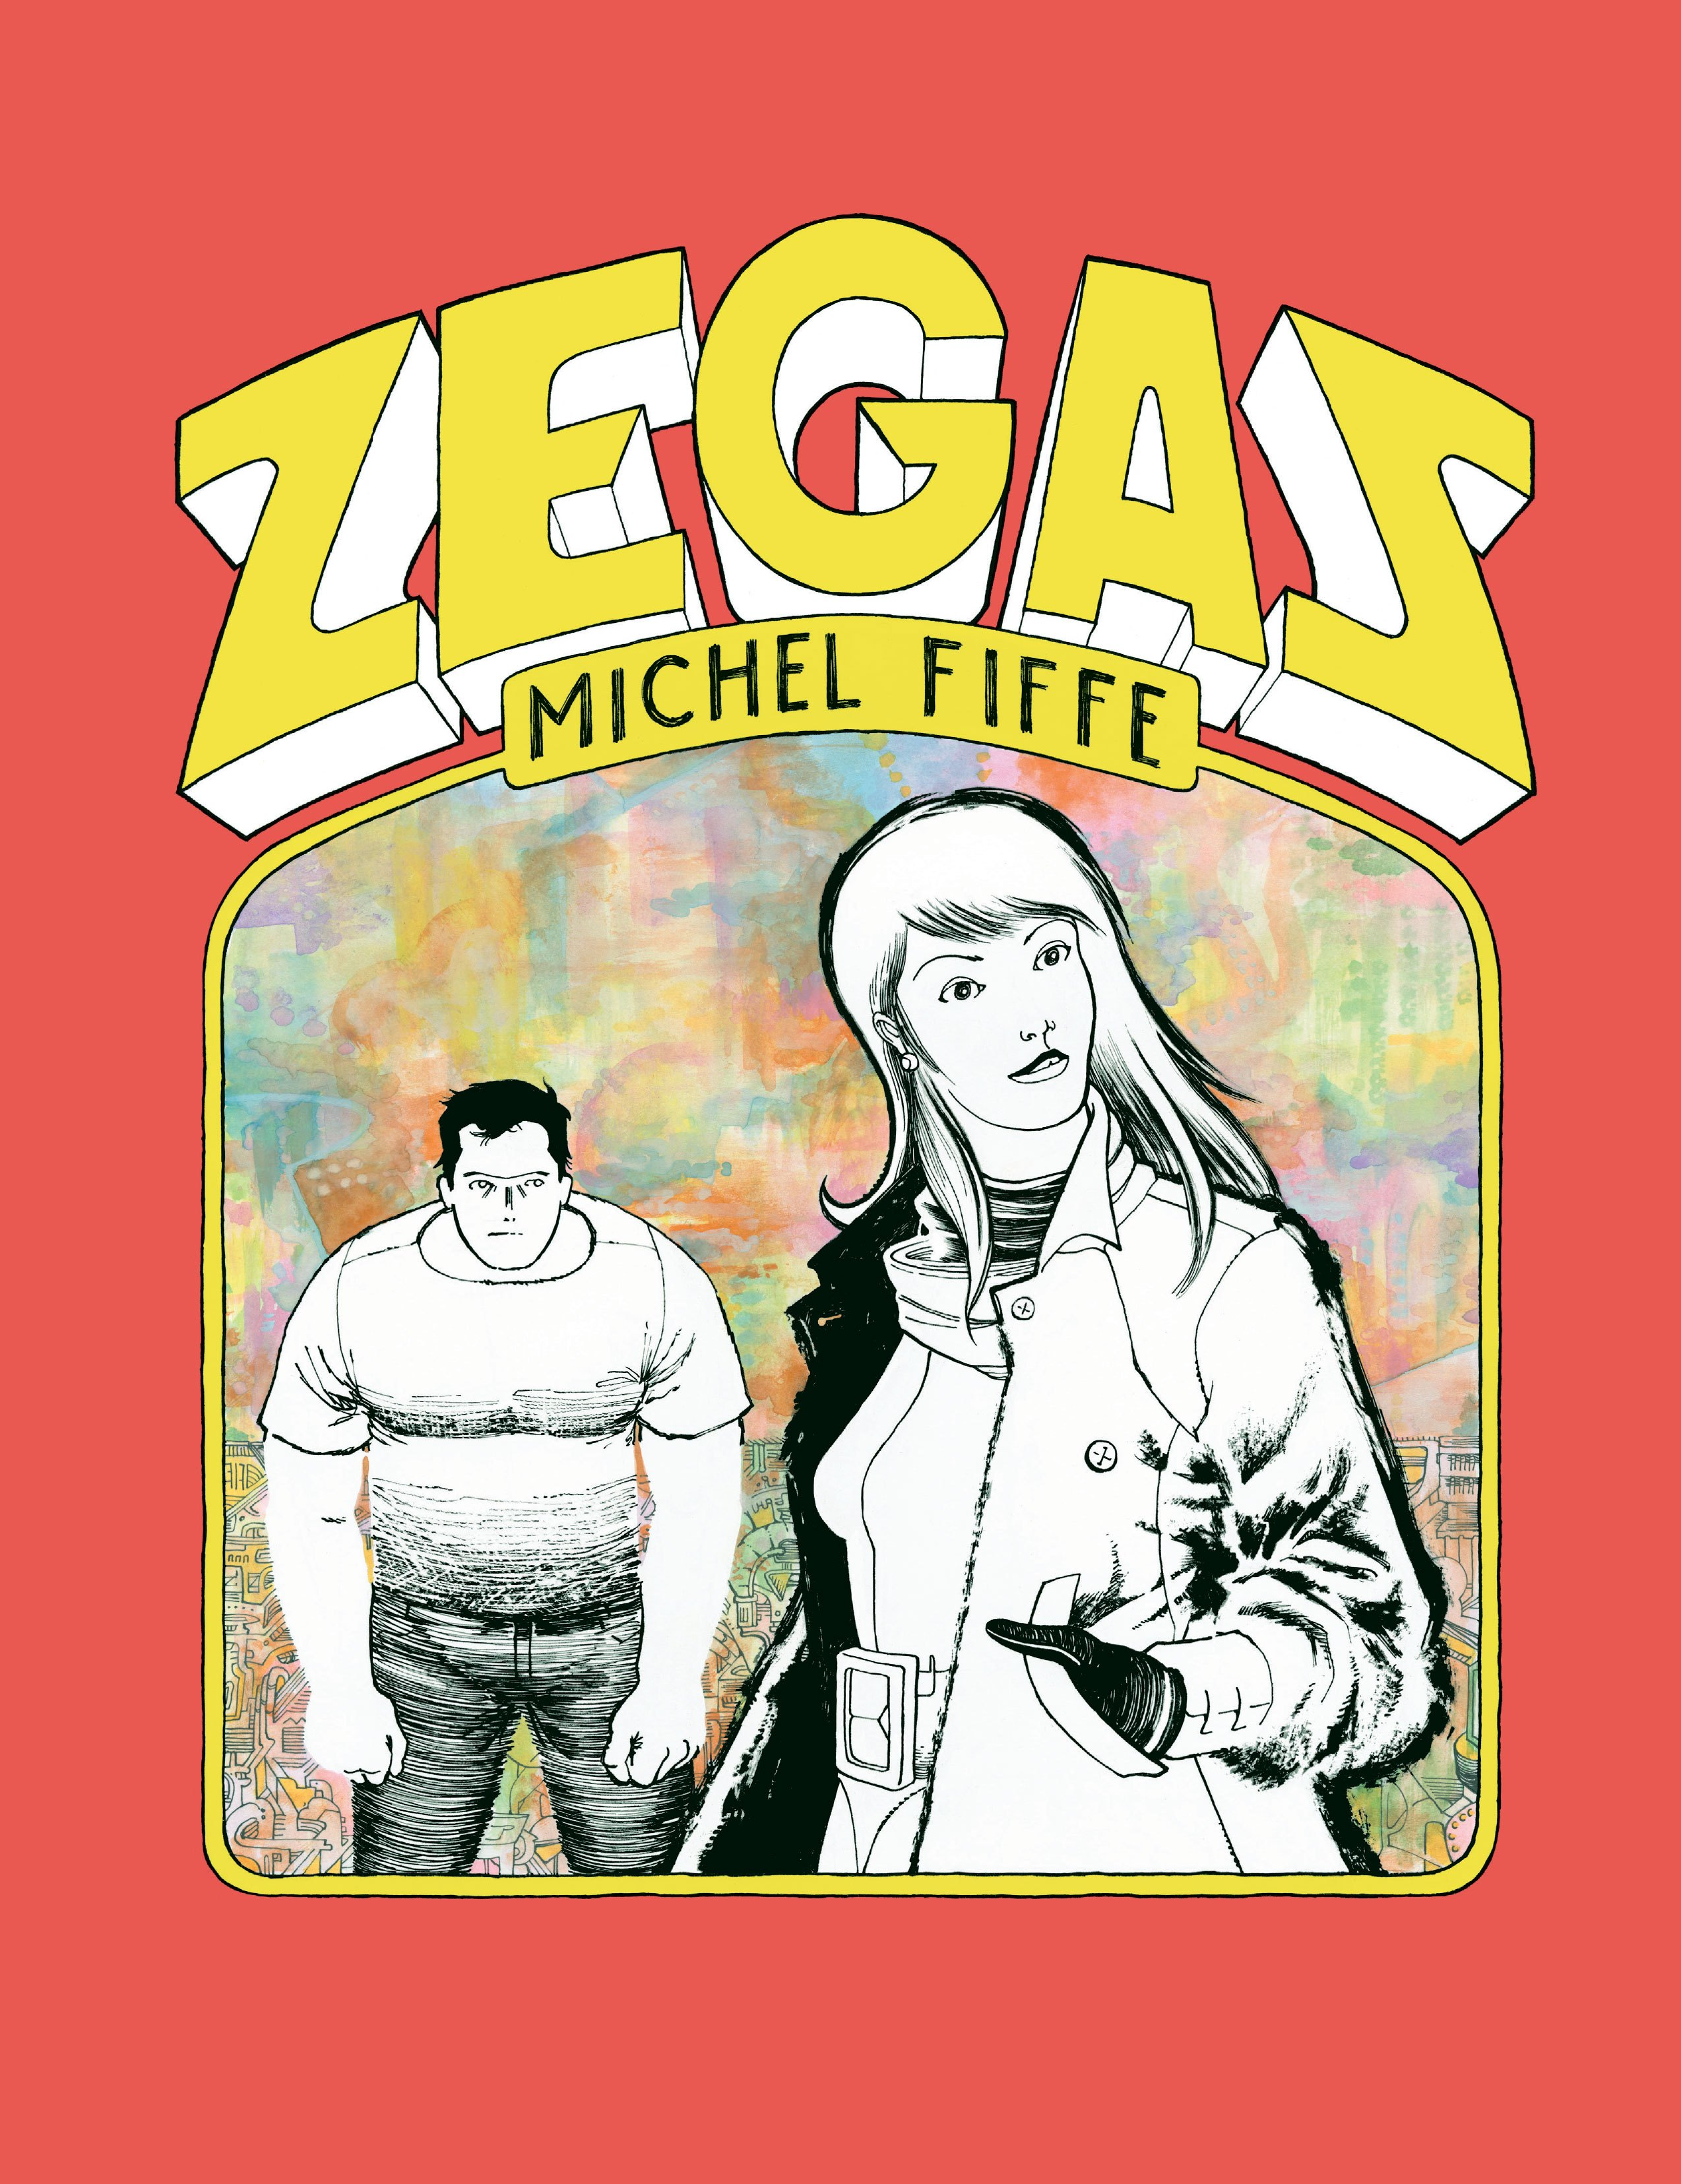 Zegas transports readers to a bizarre world existing between delightful trivial and sheer cosmic psychedelia.